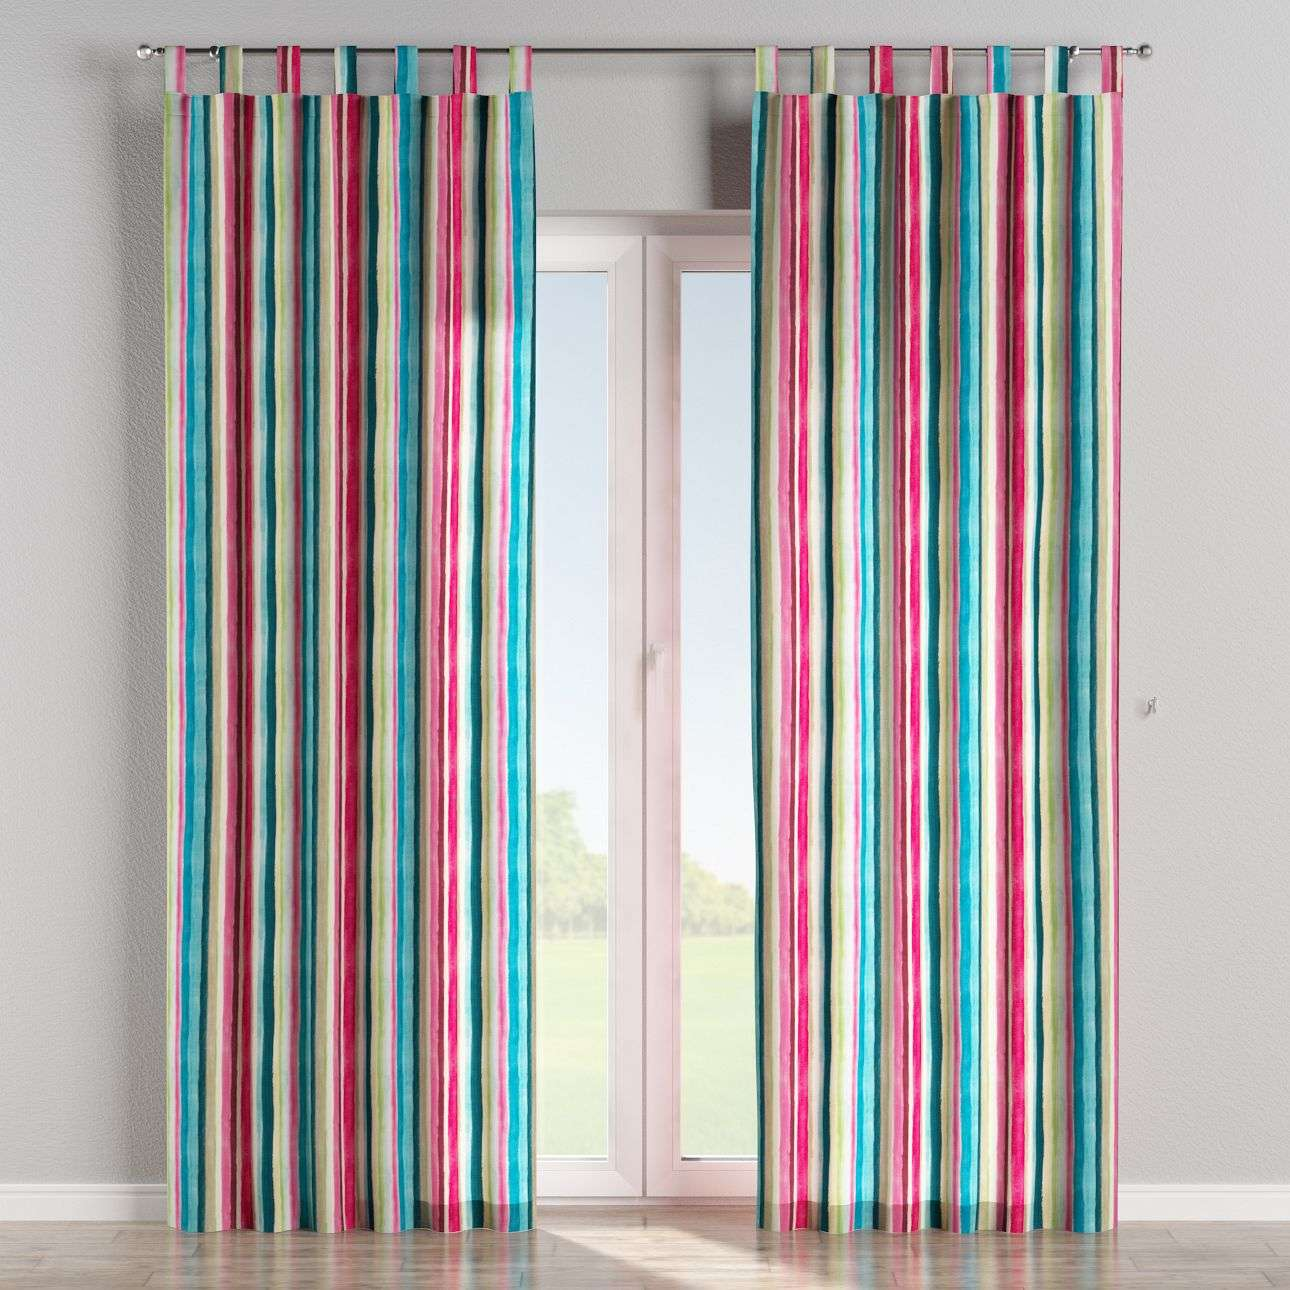 Tab top curtains 130 × 260 cm (51 × 102 inch) in collection Monet, fabric: 140-09